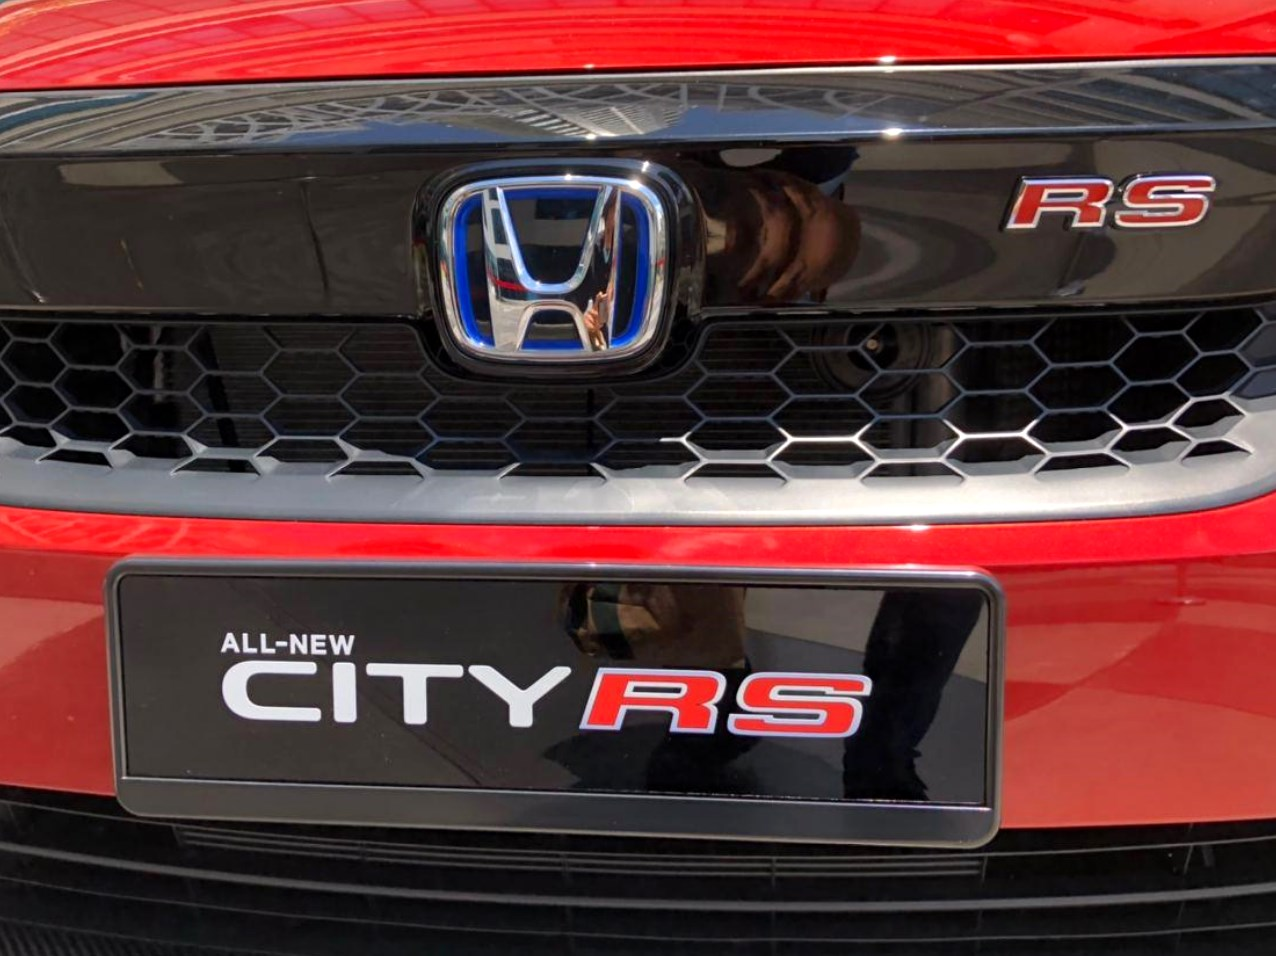 The New Honda City Rs I Mmd Leaves Its Rival Sensing Big Trouble And Watching Their Lanes Btw Rojak Daily